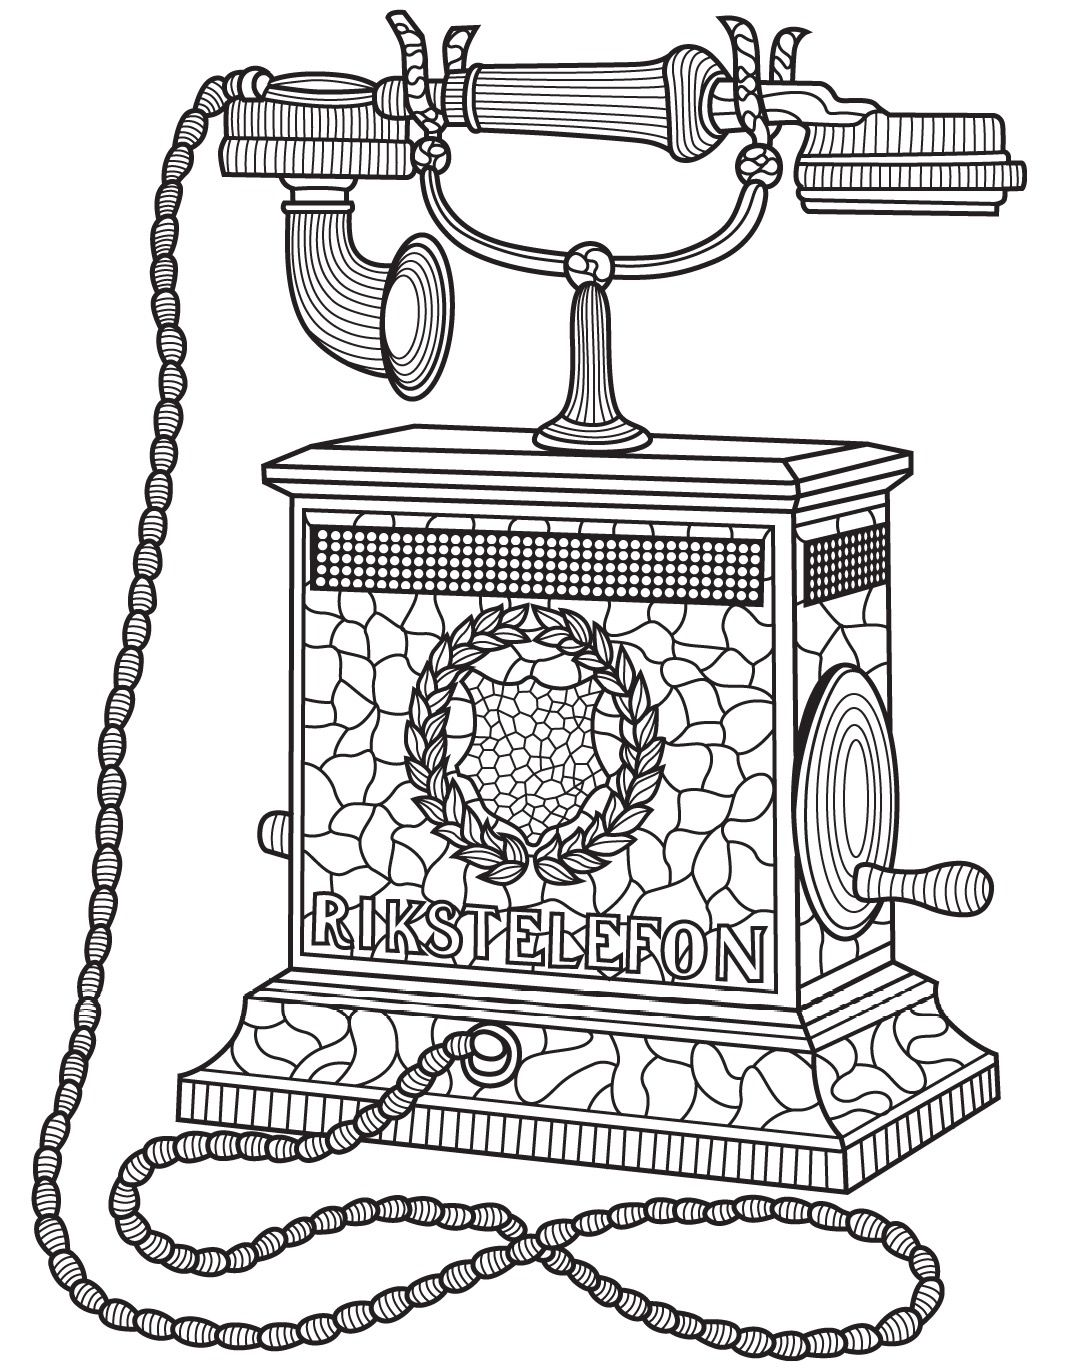 Antique Telephone Colorish Coloring App For Adults By Goodsofttech Star Wars Coloring Book Coloring Books Pokemon Coloring Pages